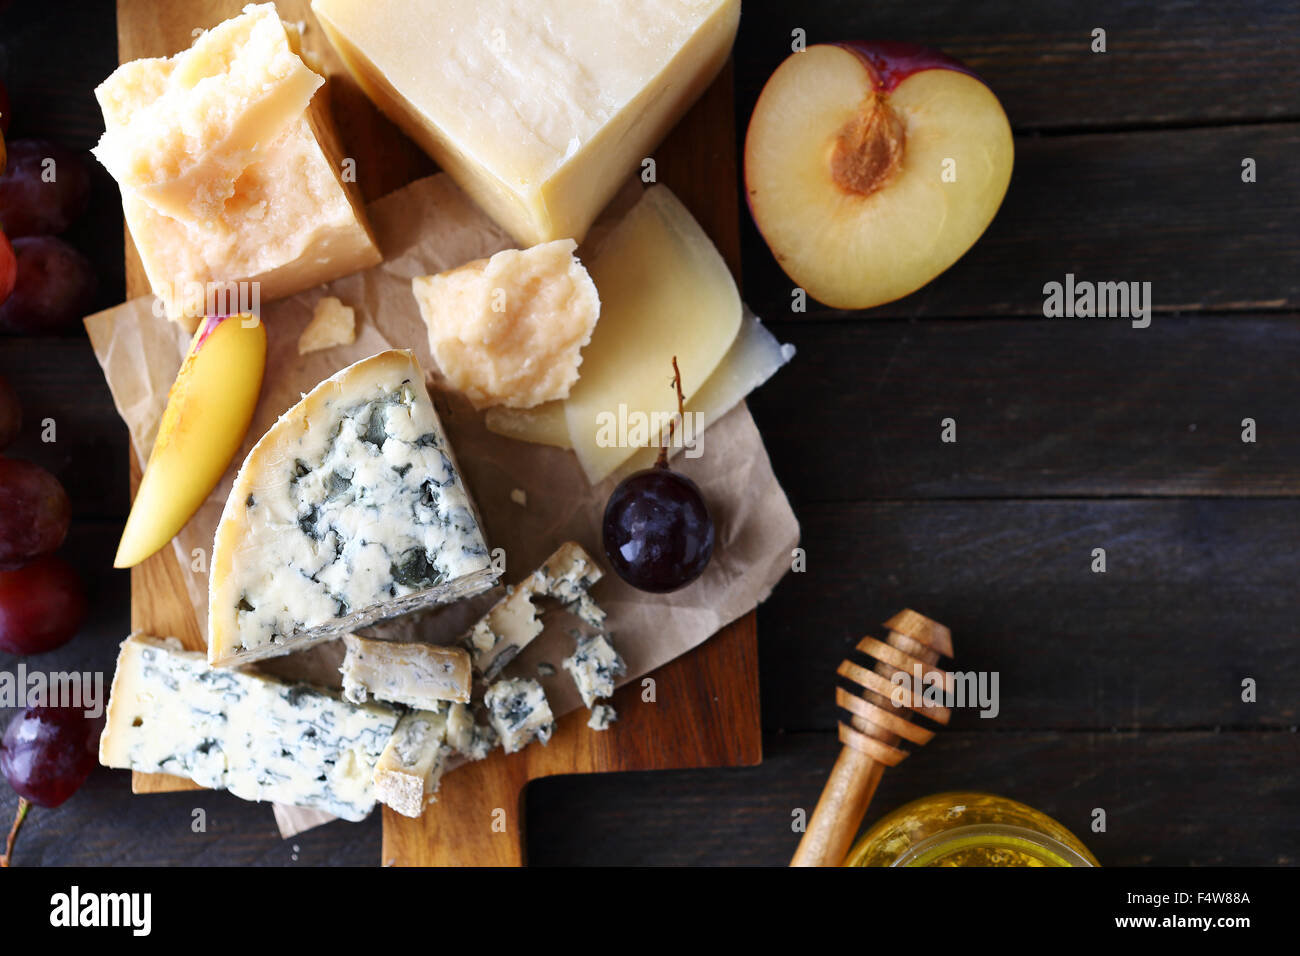 cheese with fruits for appetizer, top view - Stock Image